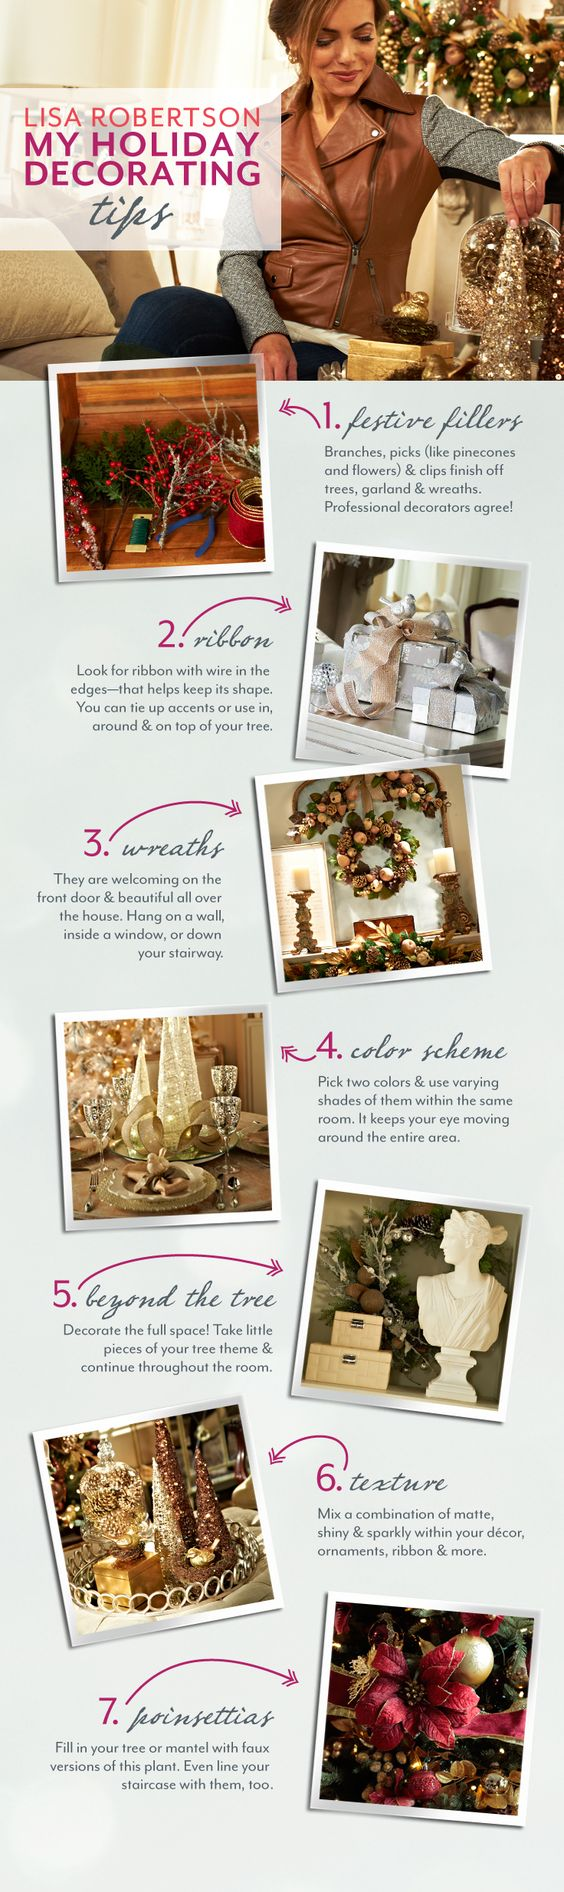 My Holiday Decorating Tips